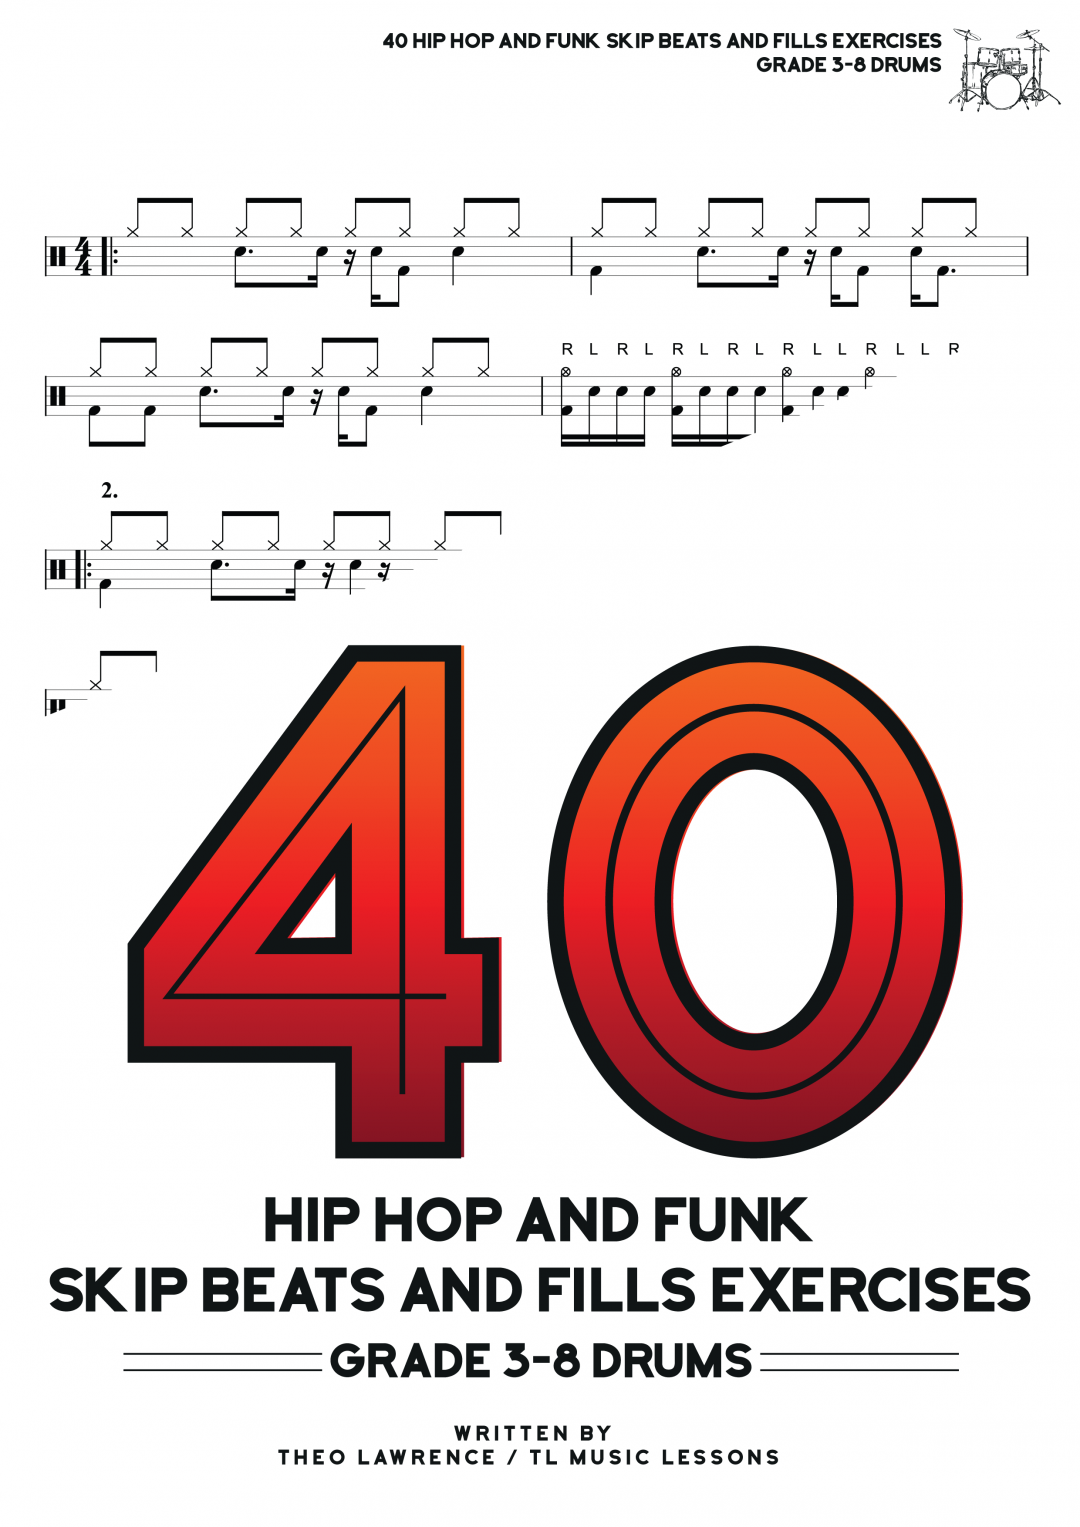 40 Hip Hop and Funk Skip Beats and Fills Exercises ebook – Grades 3-8